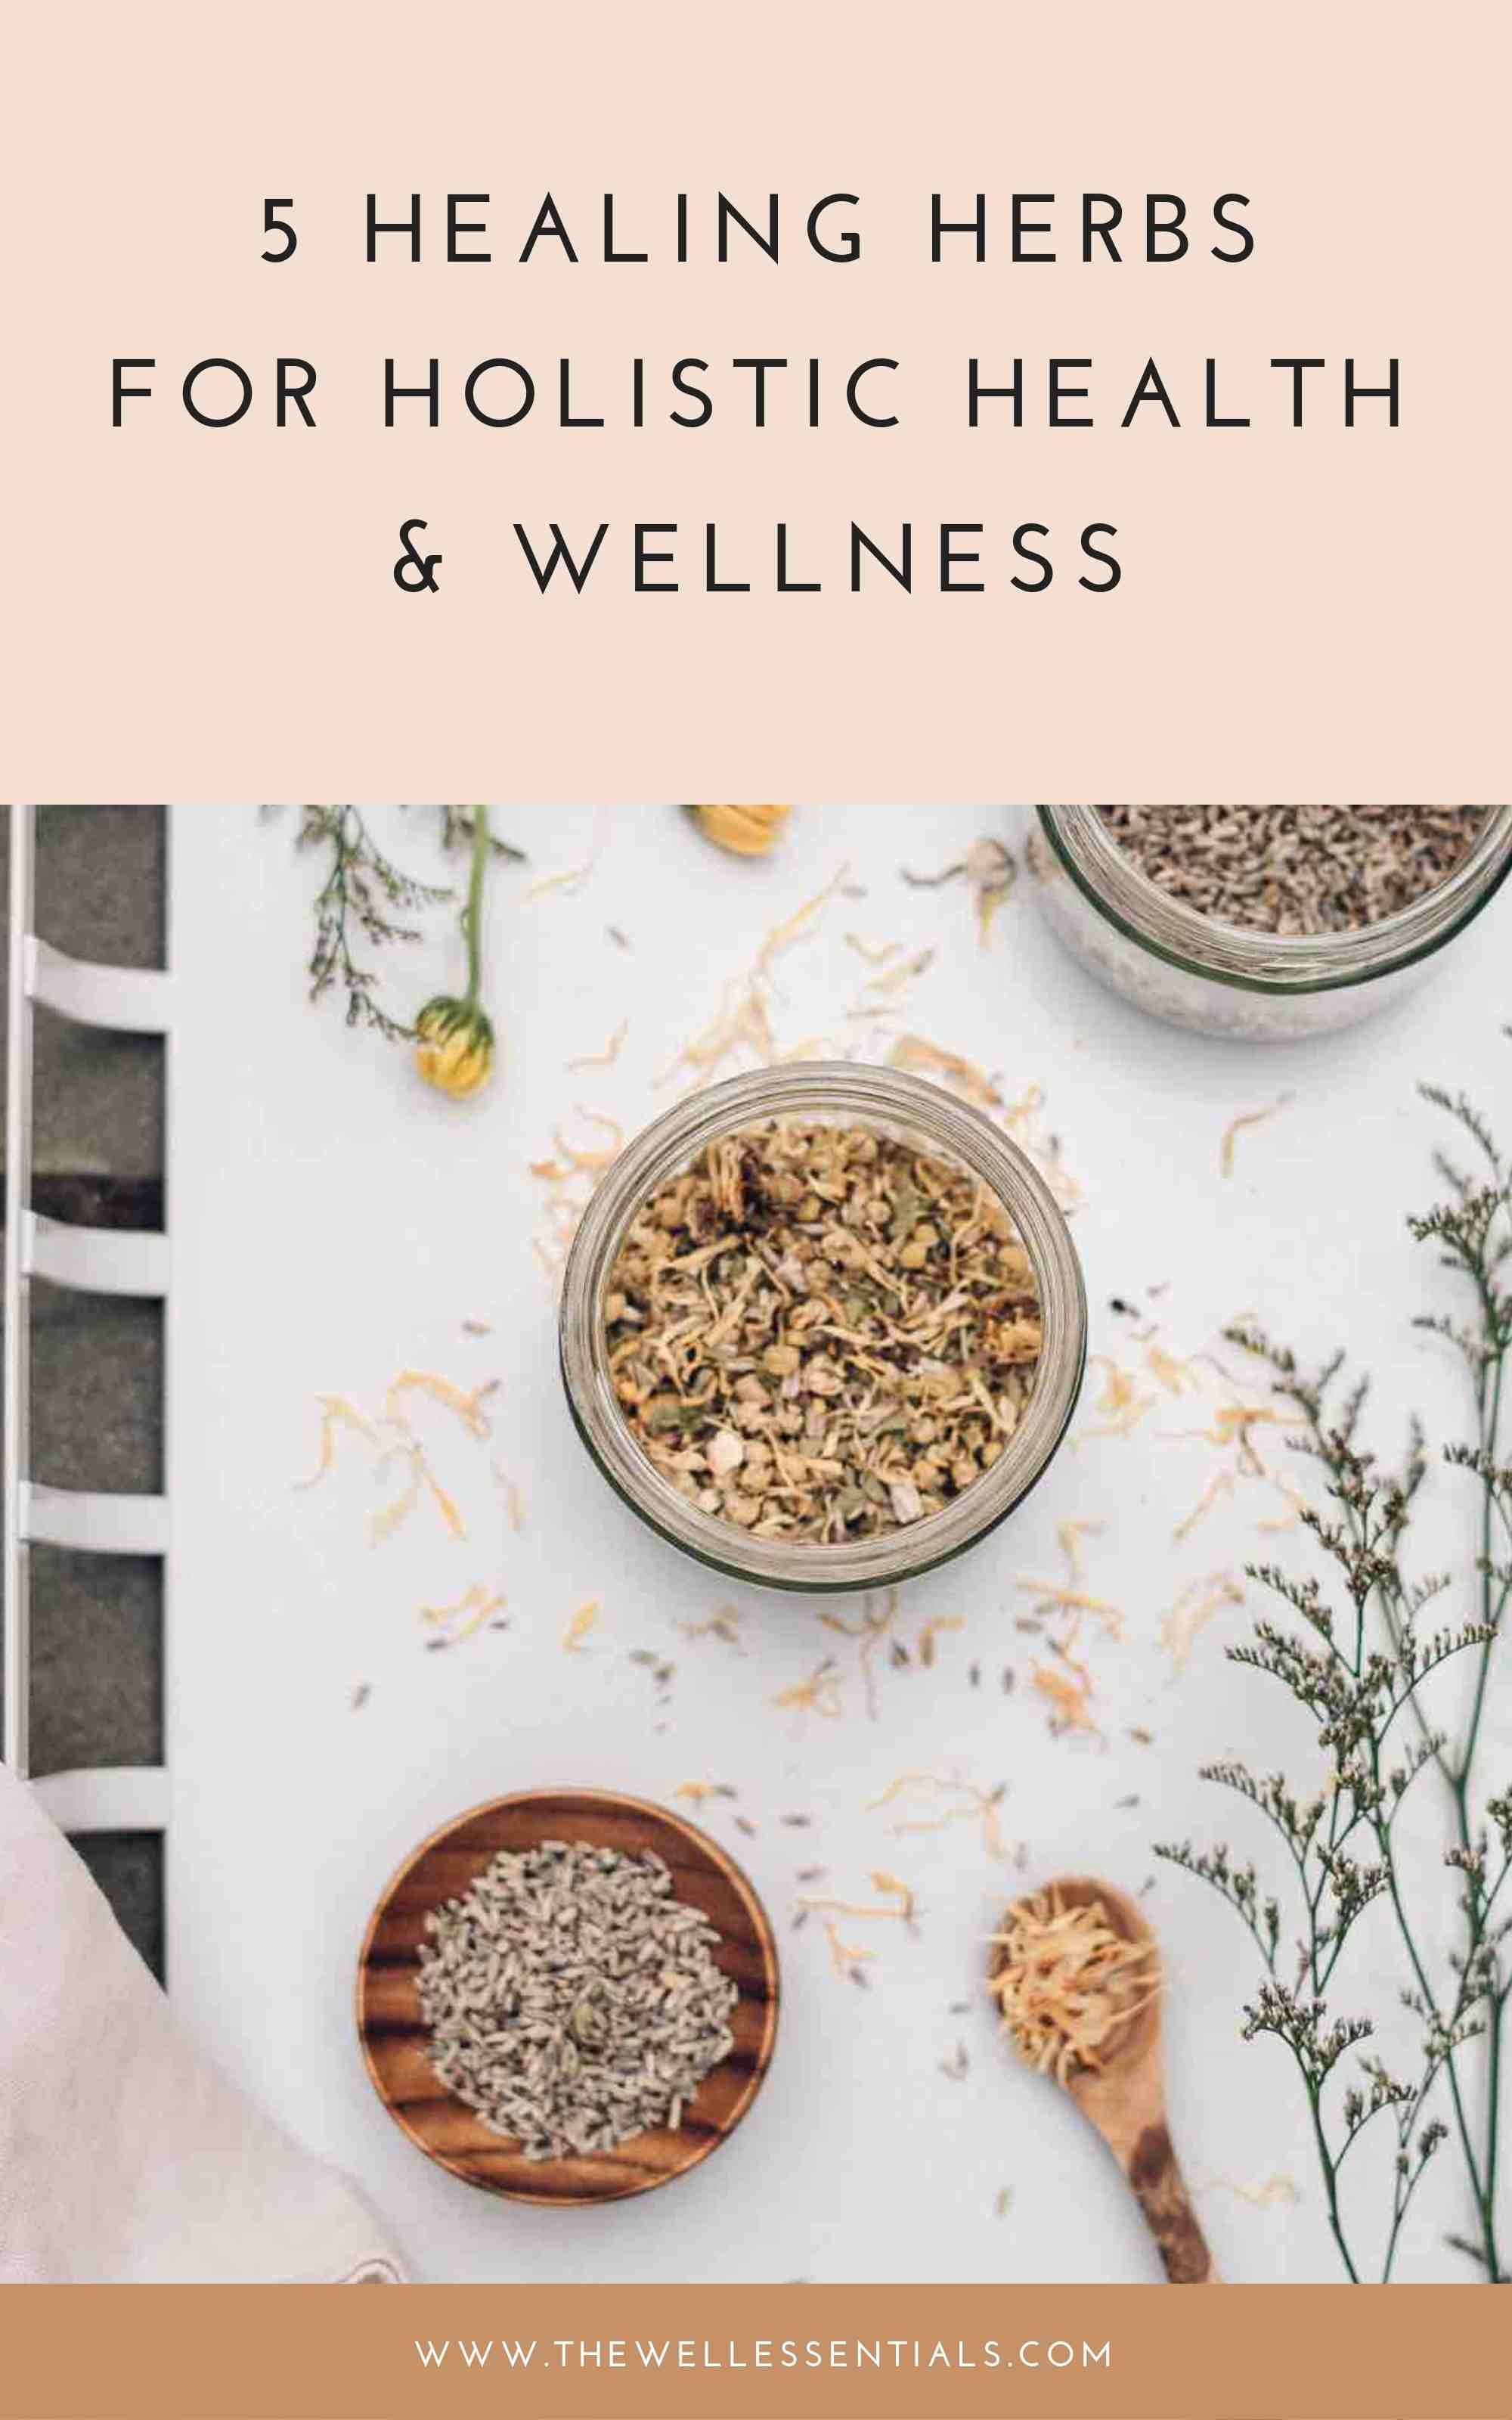 5 Healing Herbs For Holistic Health And Wellness - The Well Essentials - Integrative Dietitian Approved